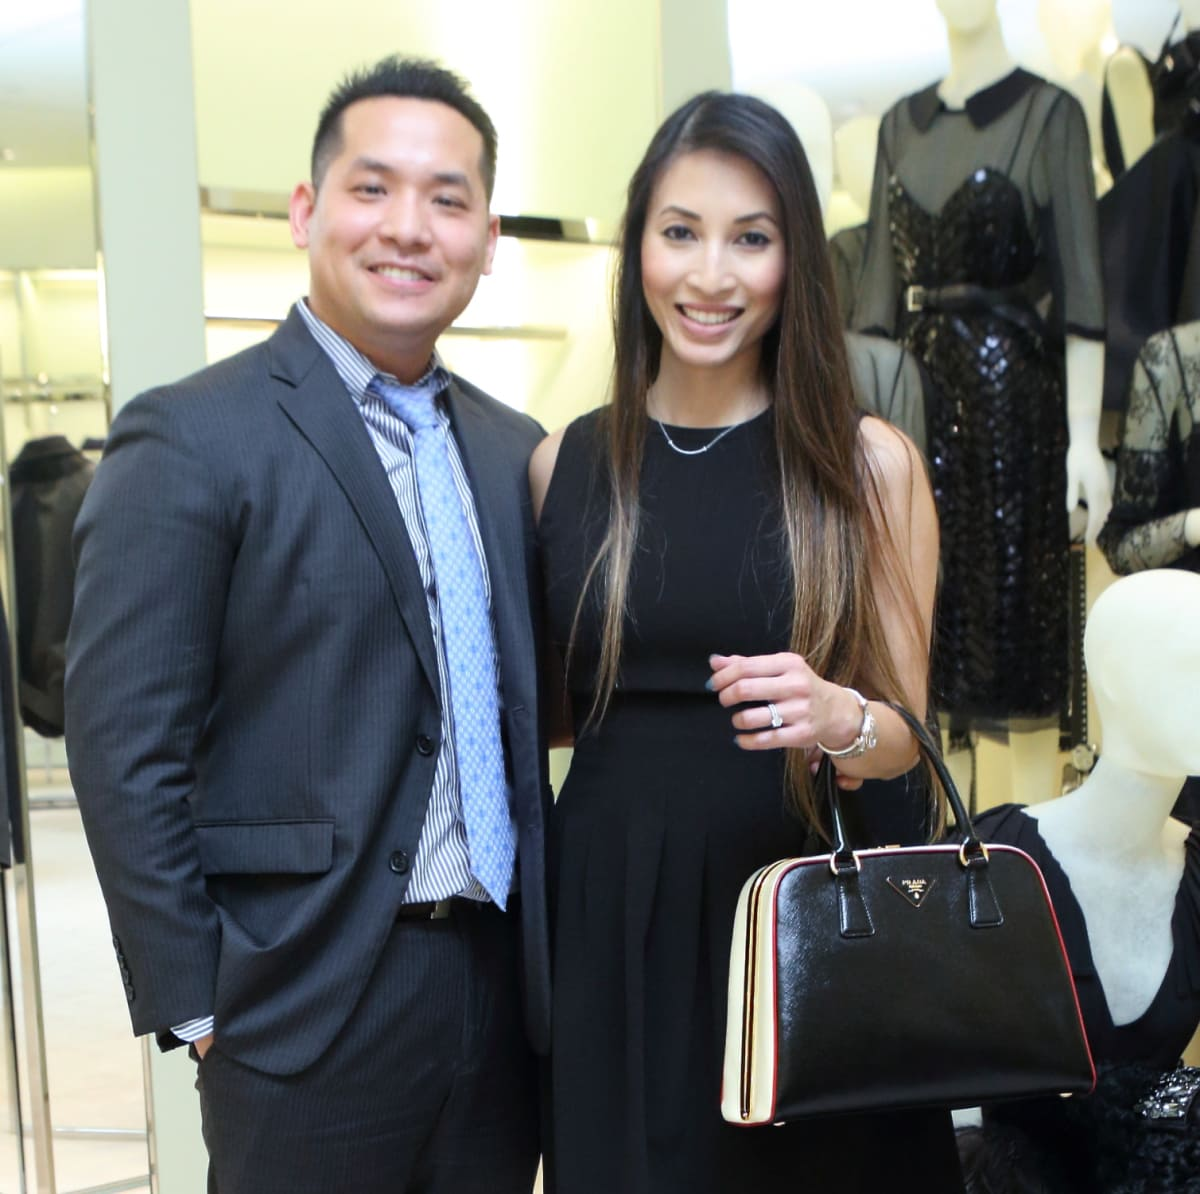 Ryan Nguyen, Vy Le at APAHA kickoff party at Prada